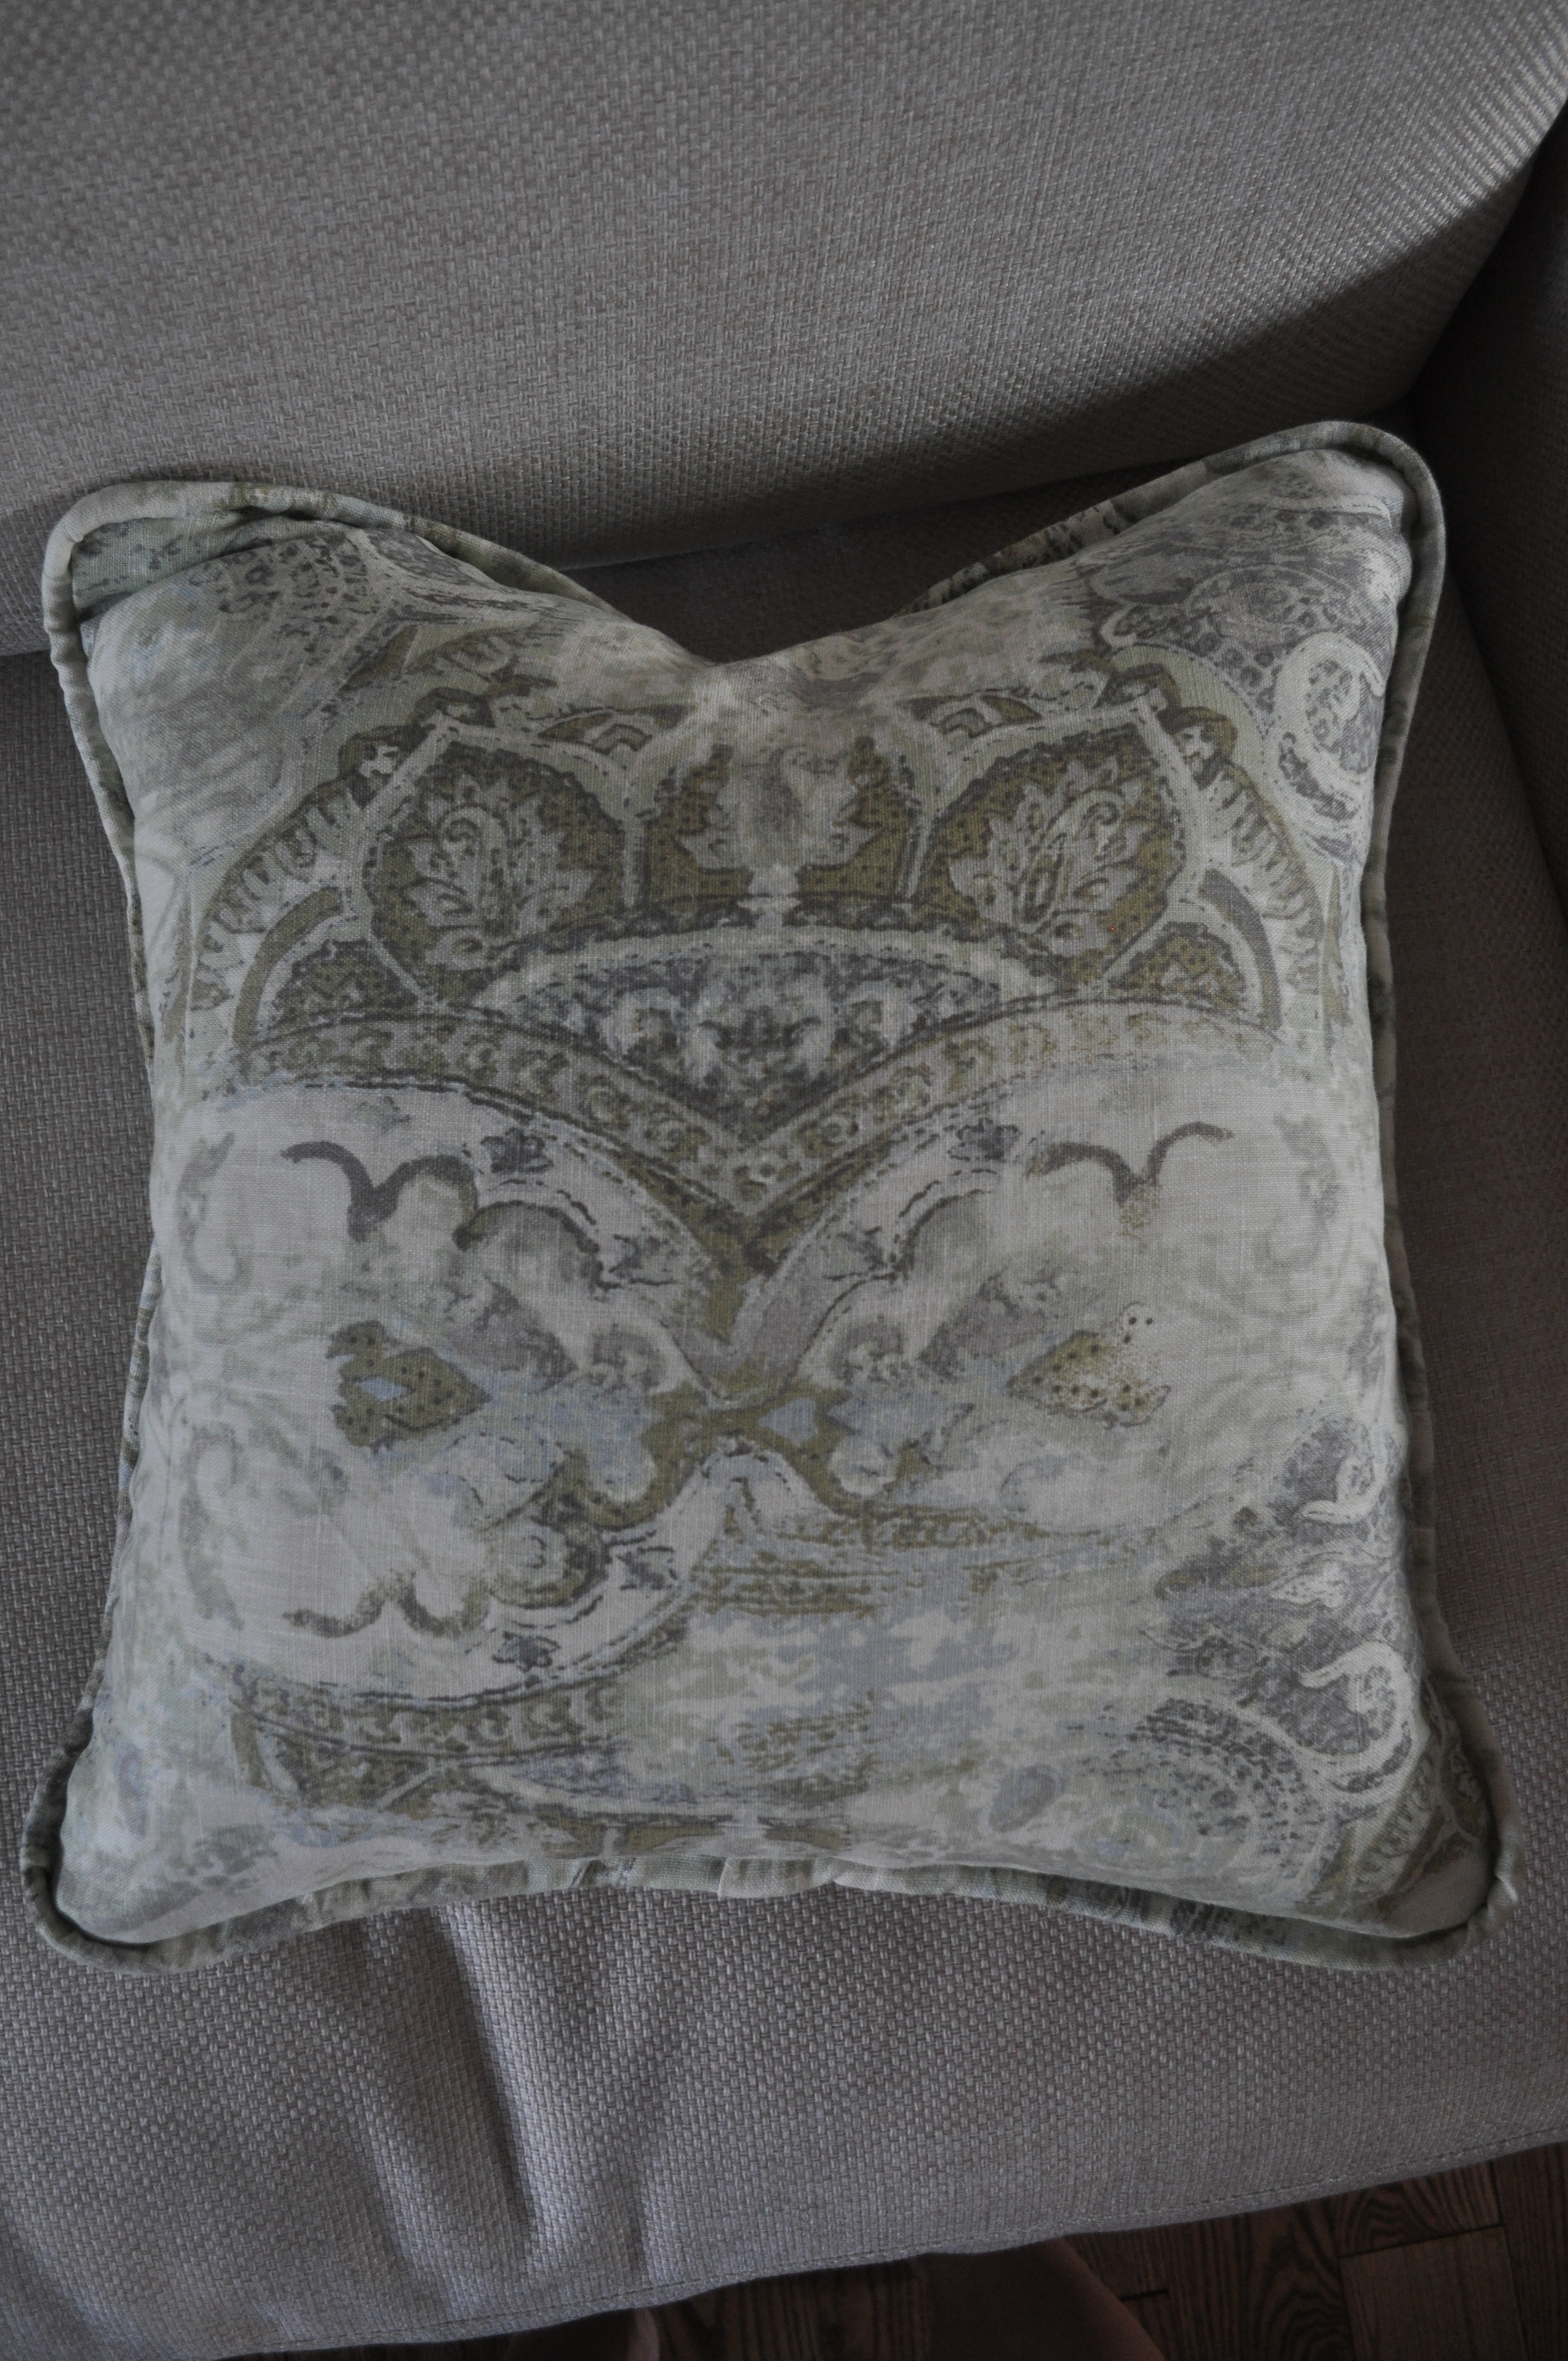 Pillow, fabric detail